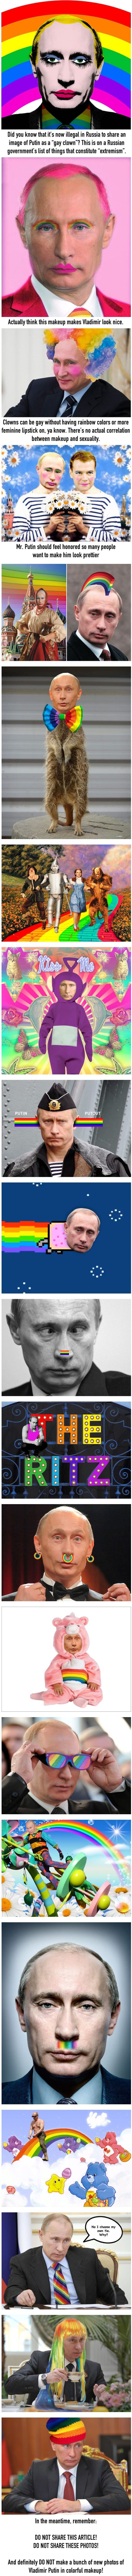 These pictures are now illegal in Russia